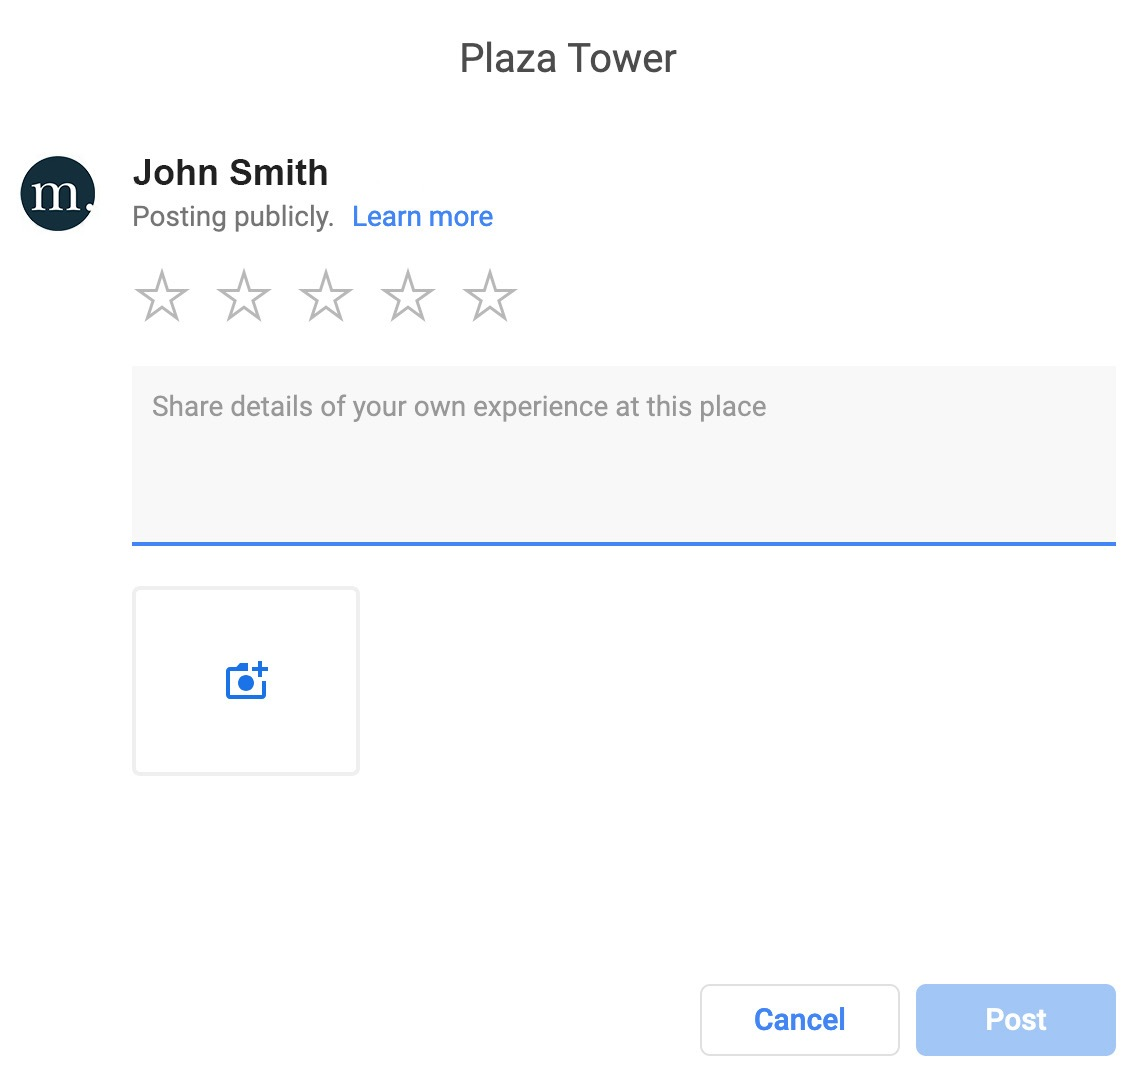 SEO for Plaza Tower response